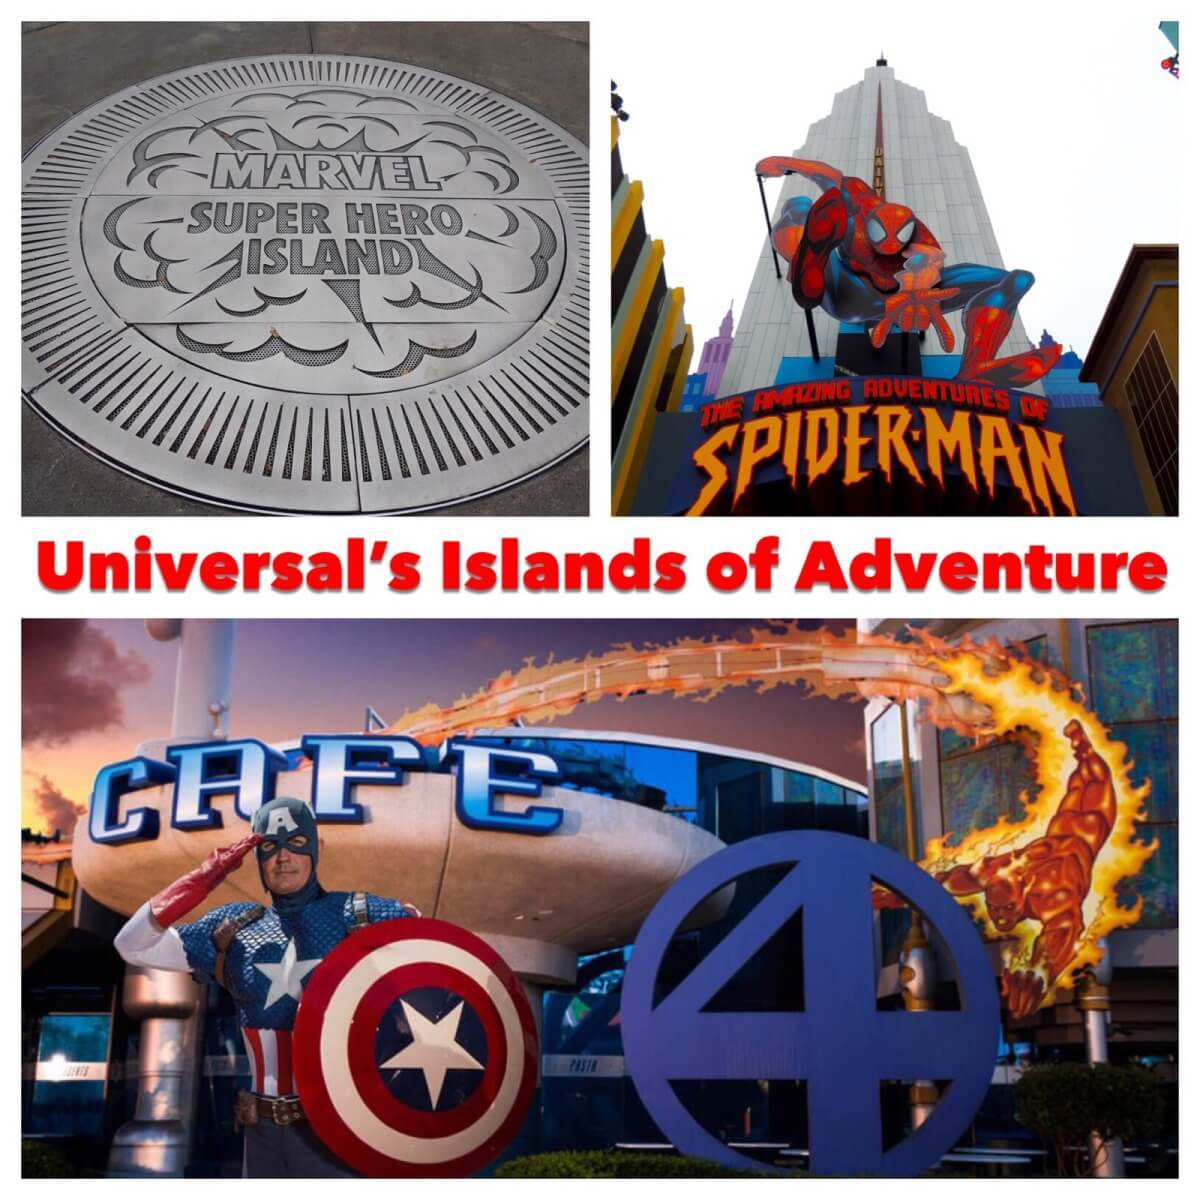 Marvel Super Hero Island at Universal's Islands of Adventure park is full of thrills and excitement.   Universal Orlando Resort - Florida.